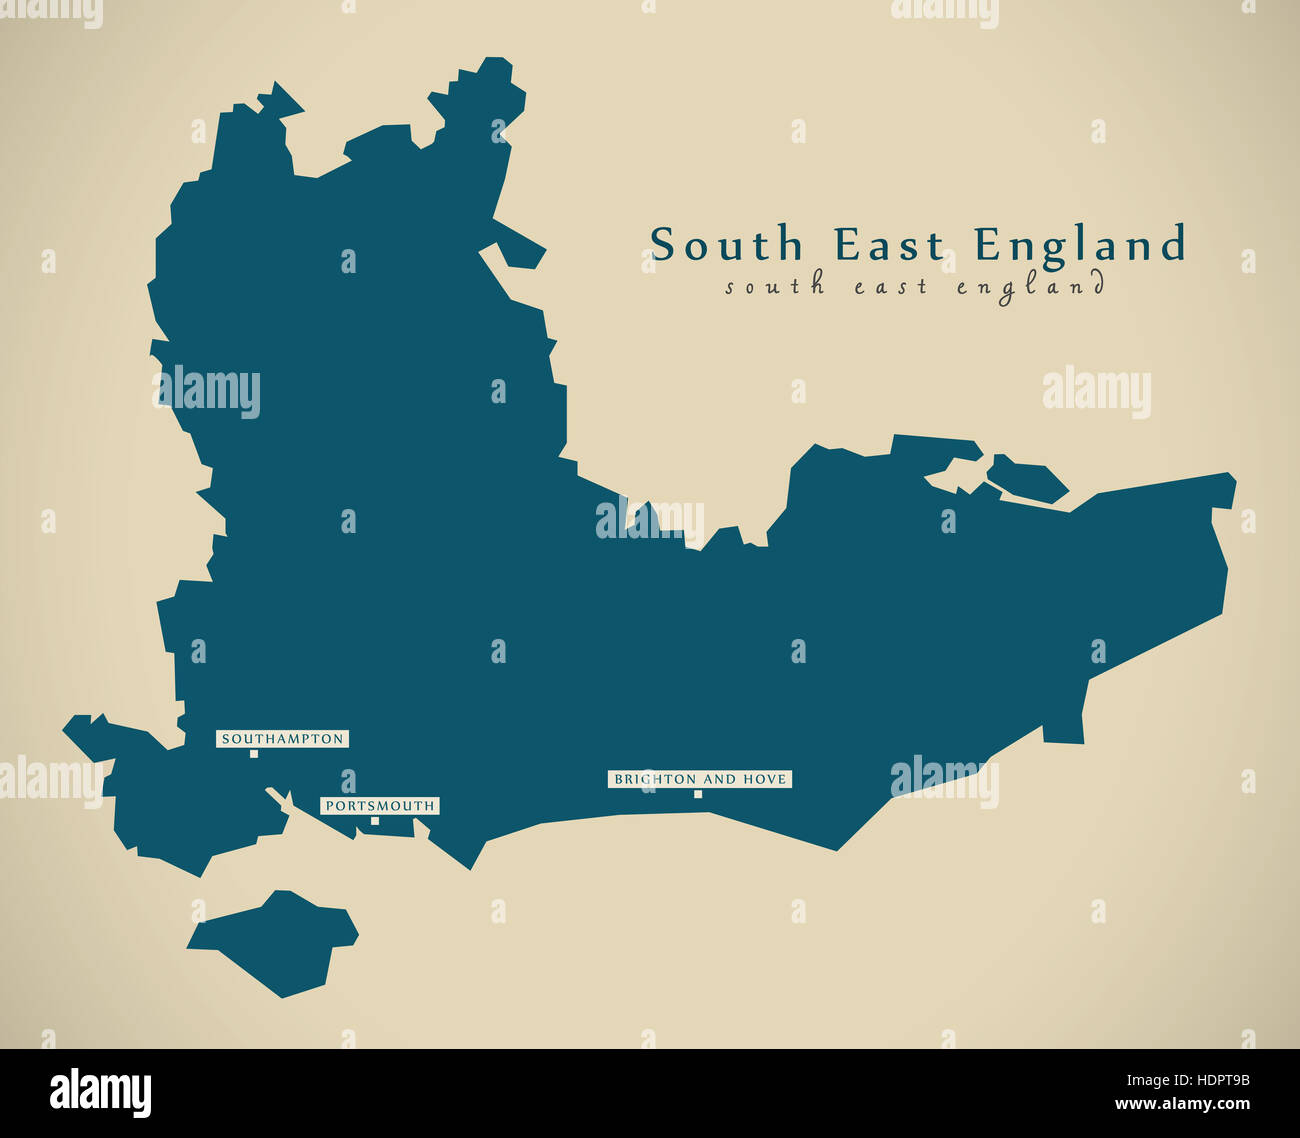 South East Of England Map.Modern Map South East England Uk Illustration Stock Photo